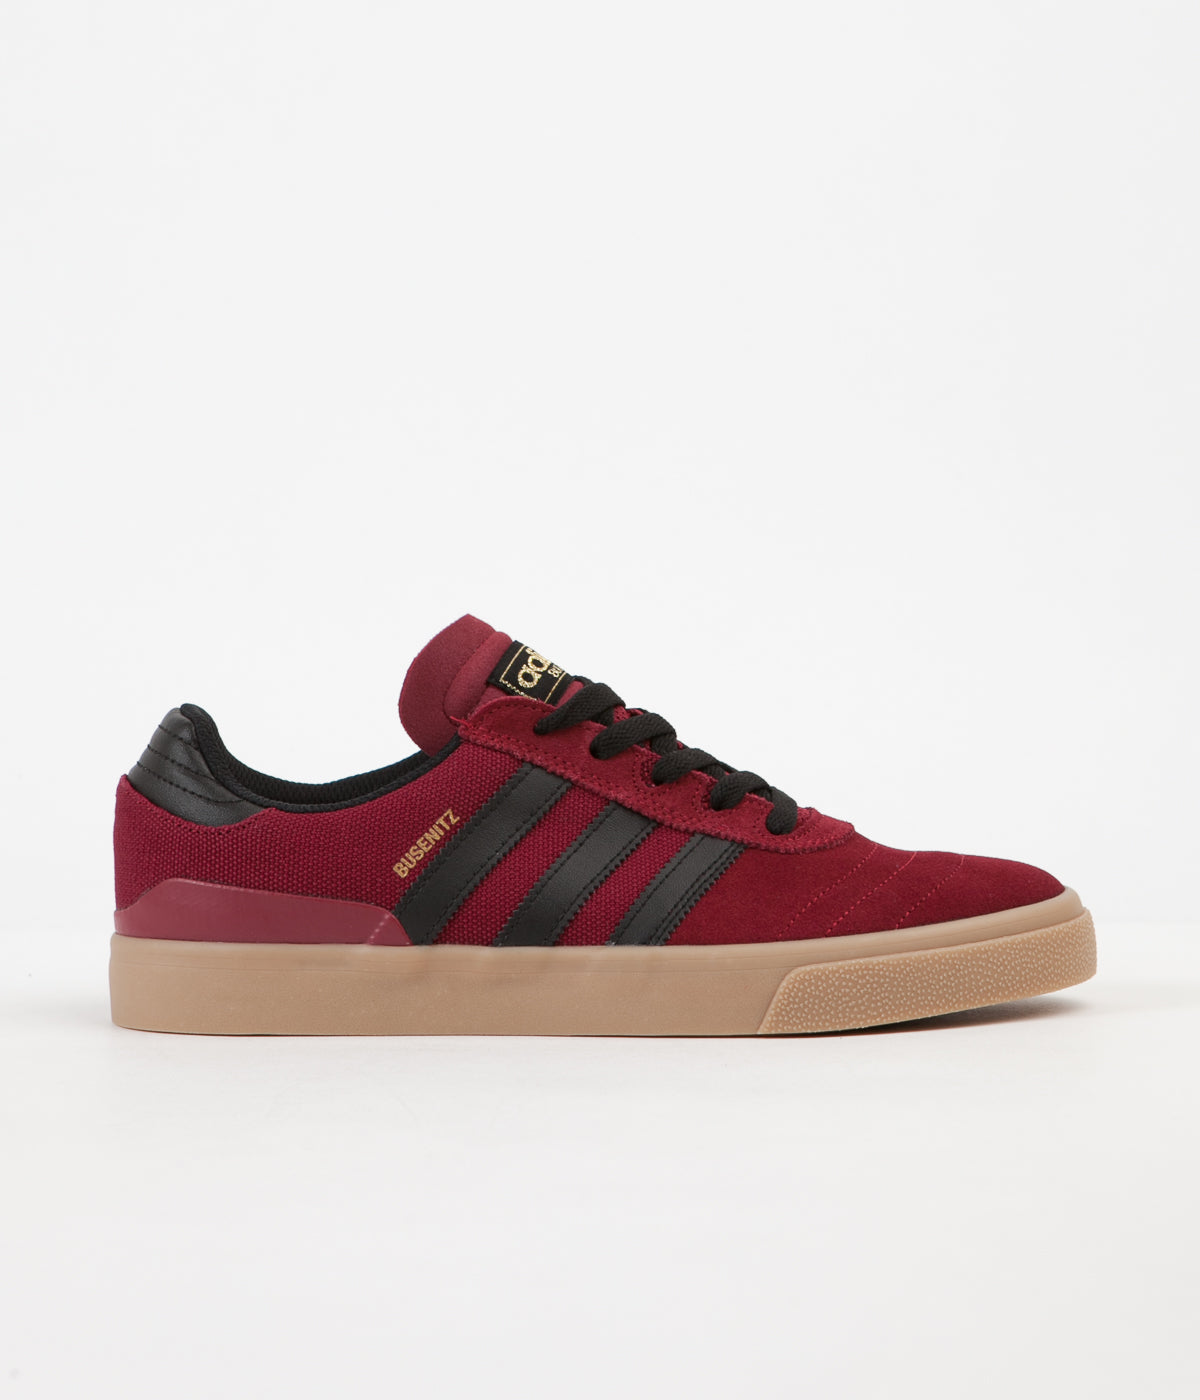 Adidas Busenitz Vulc Shoes - Collegiate Burgundy / Core Black / Gum